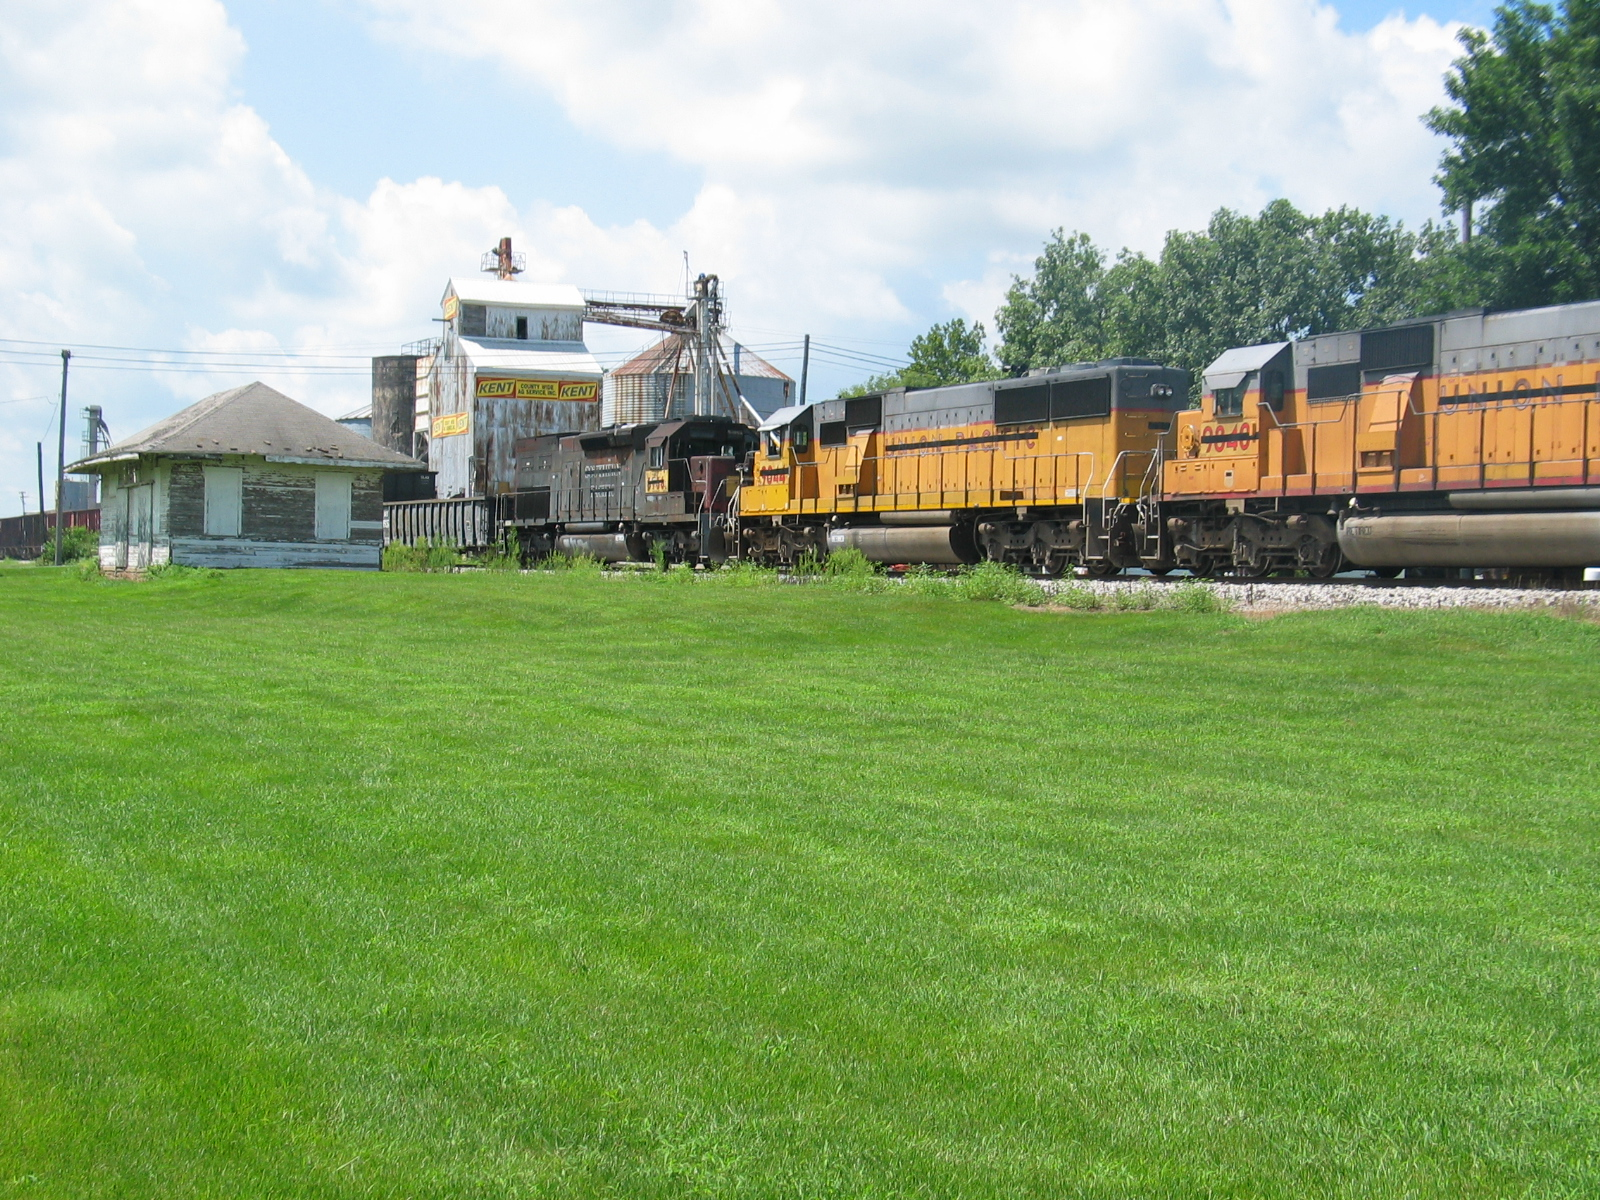 More dead engines, east train at Atalissa, Aug. 9, 2007.